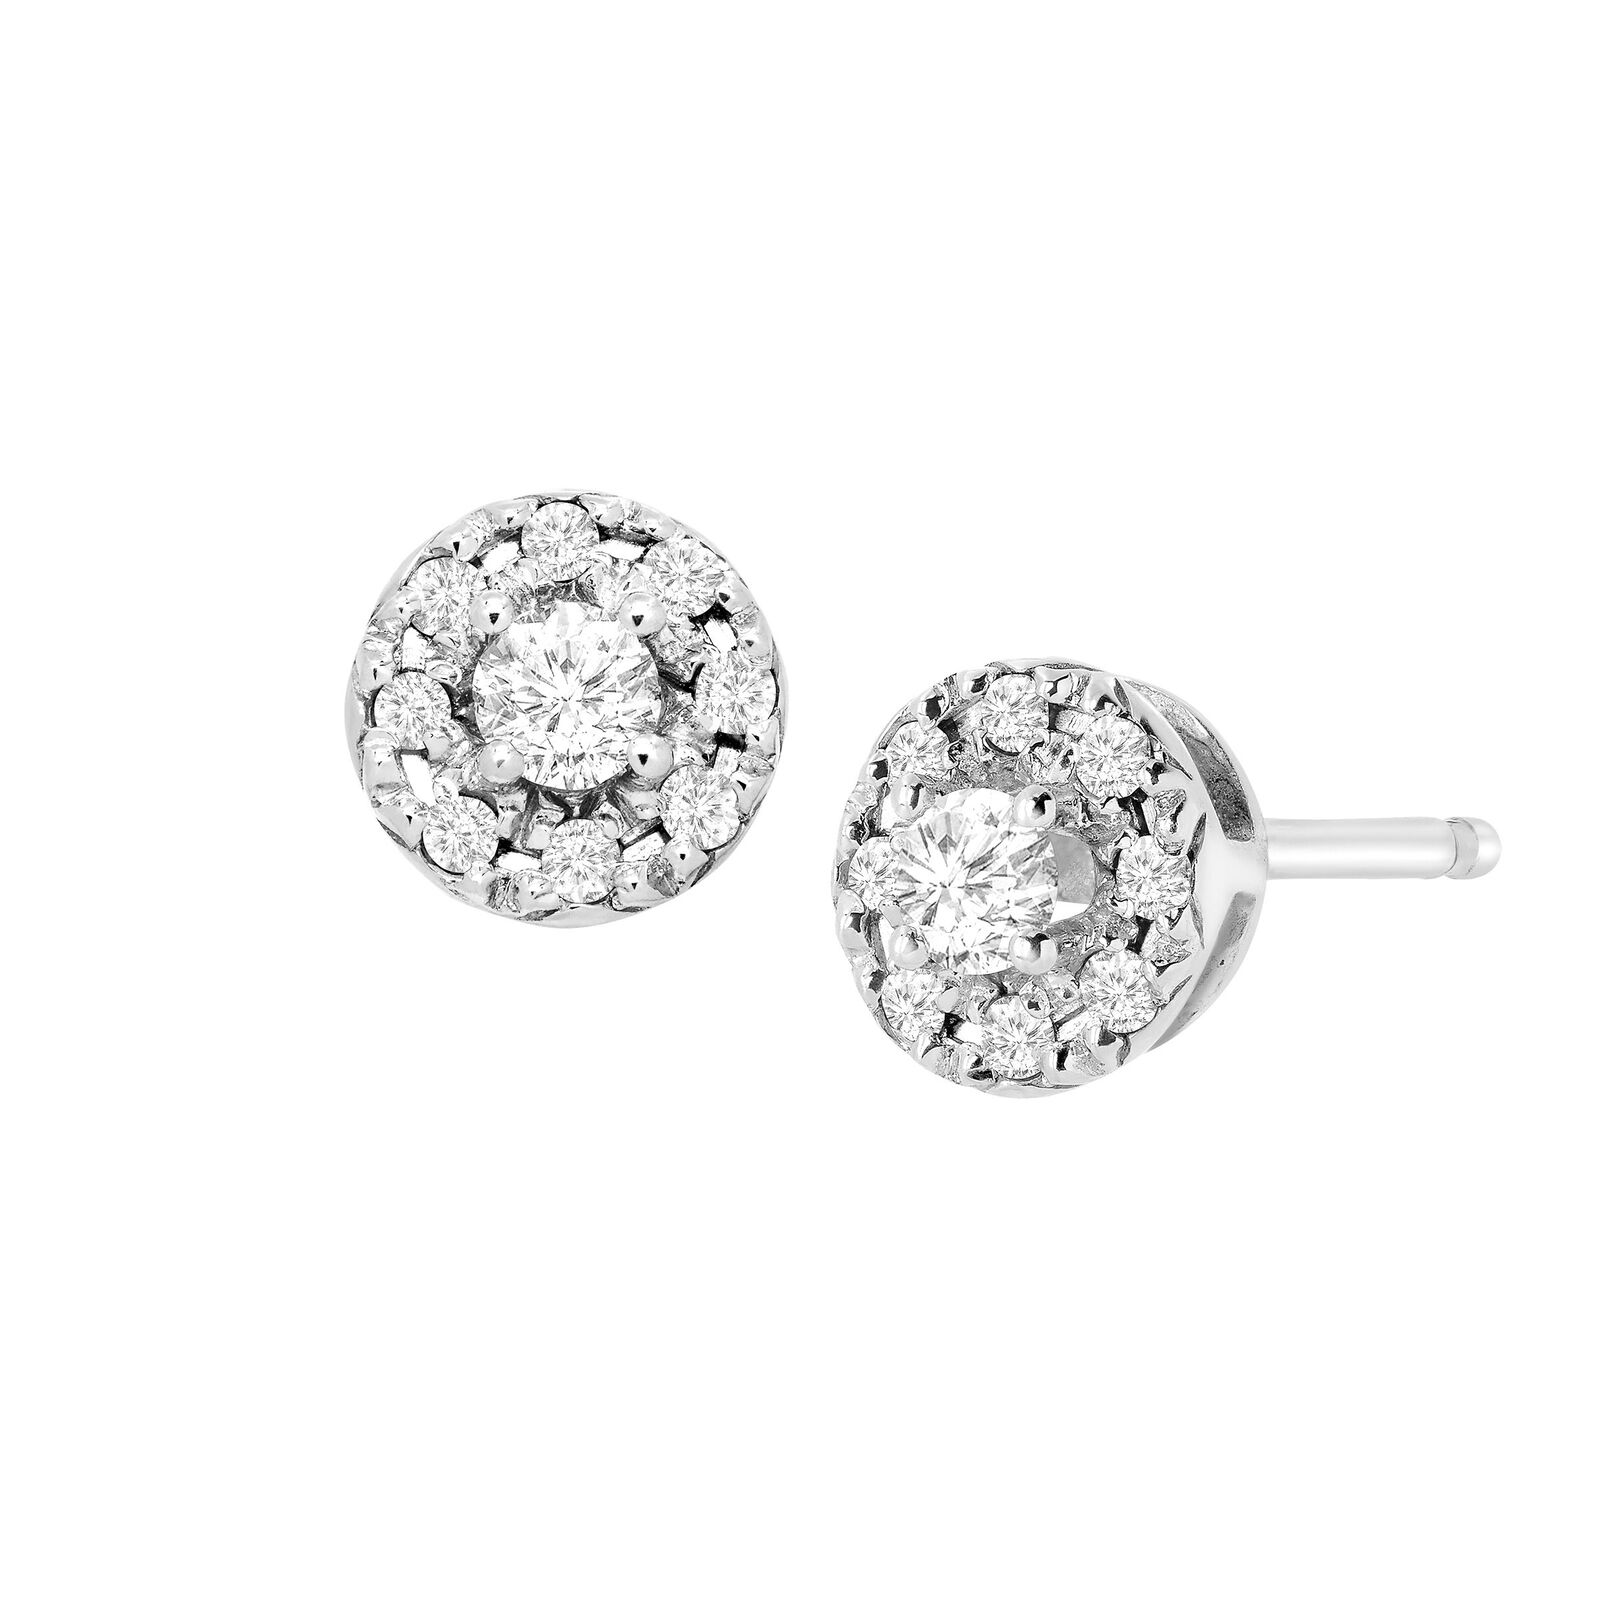 2131527a6 קנו תכשיטים יוקרה | 1/4 ct Diamond Round Halo Stud Earrings in ...